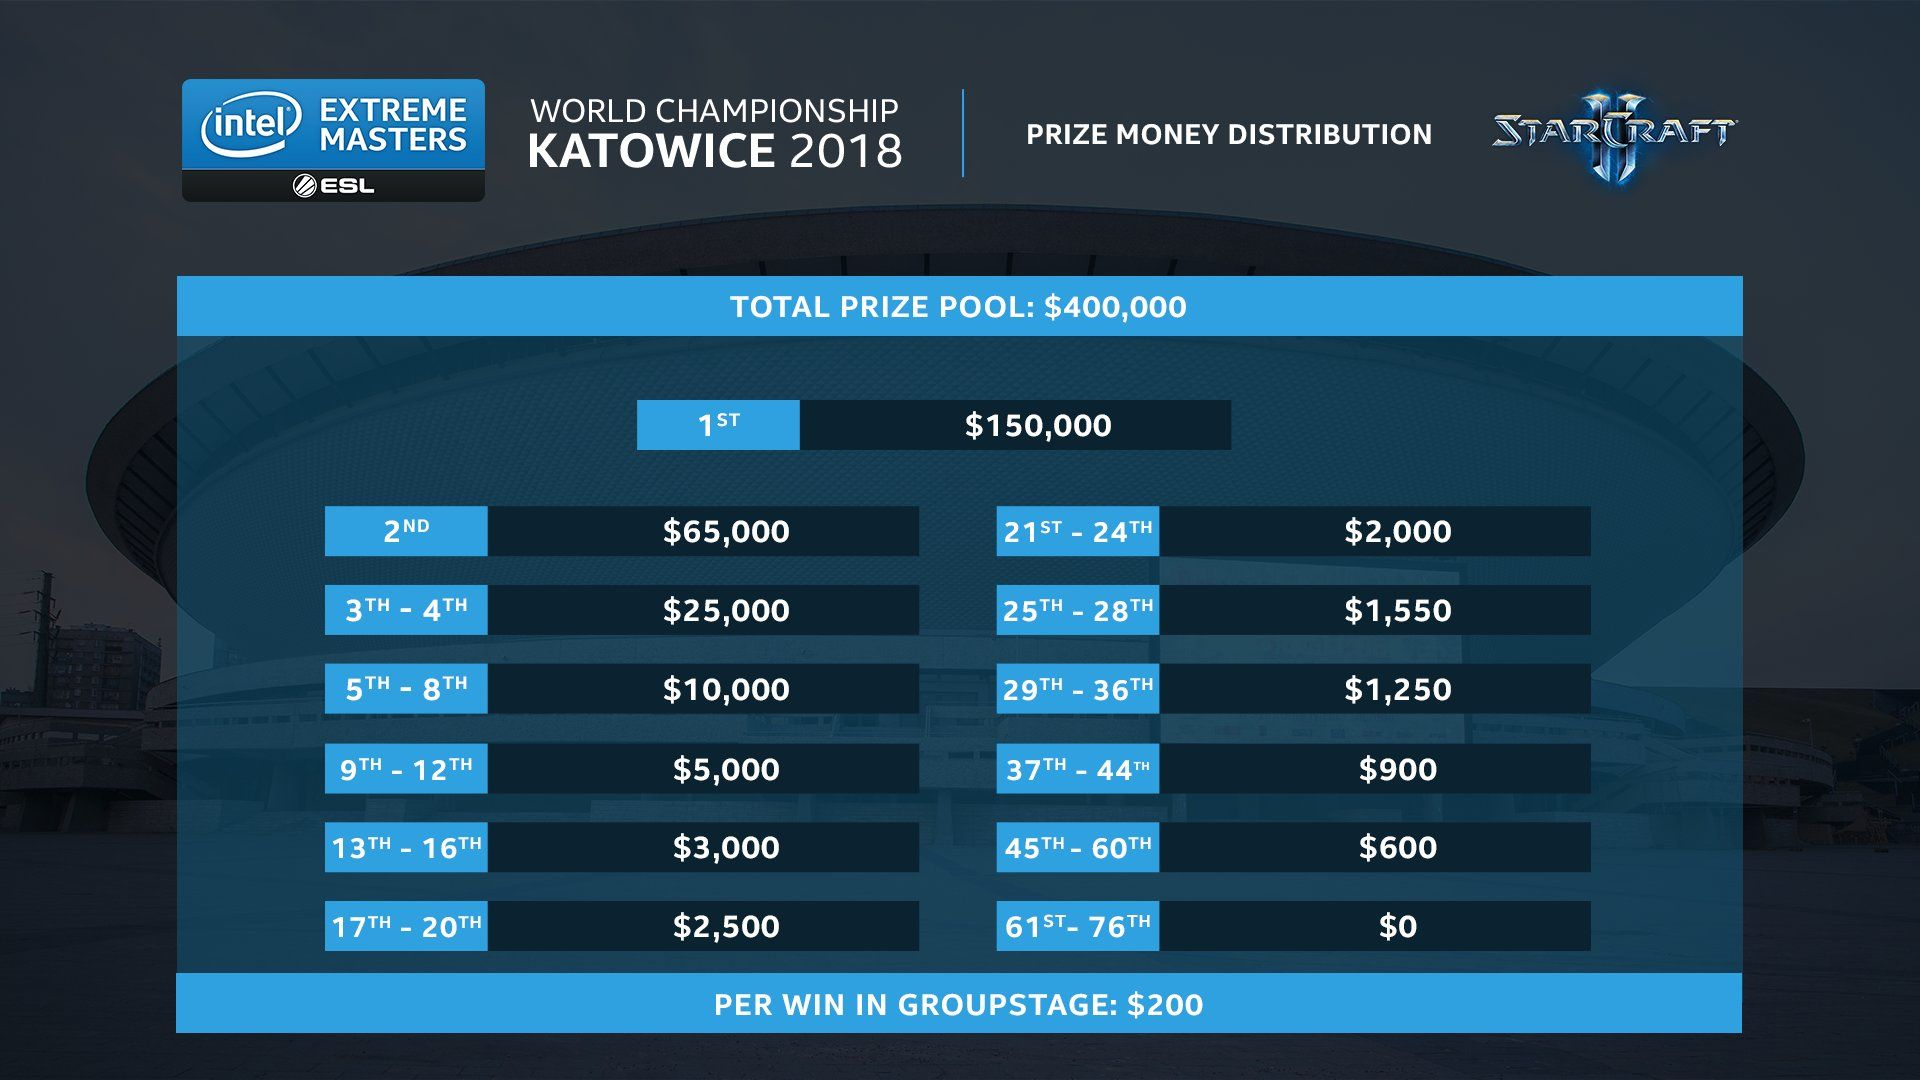 The prize money distribution for IEM Katowice looks great